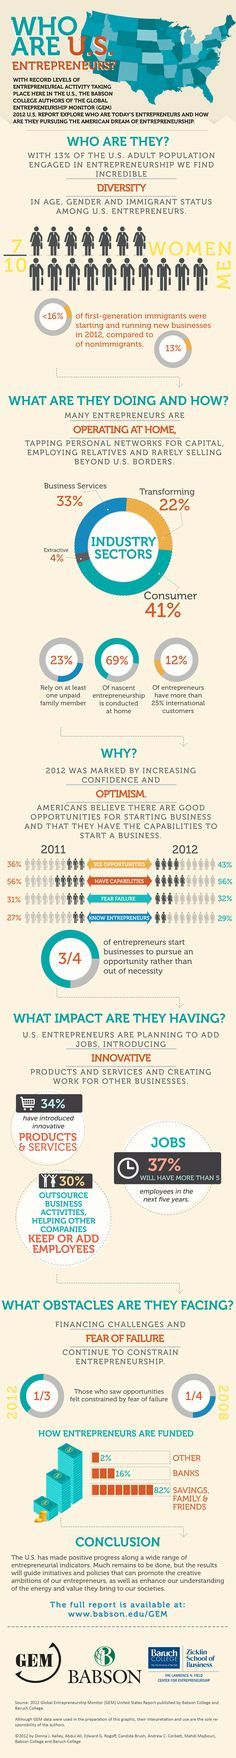 Who are U.S. Entrepreneurs? - Entrepreneurship in the U.S. Reaches Highest Level in More Than a Decade. Infographic provides good information on who, what, where, and problems faced.